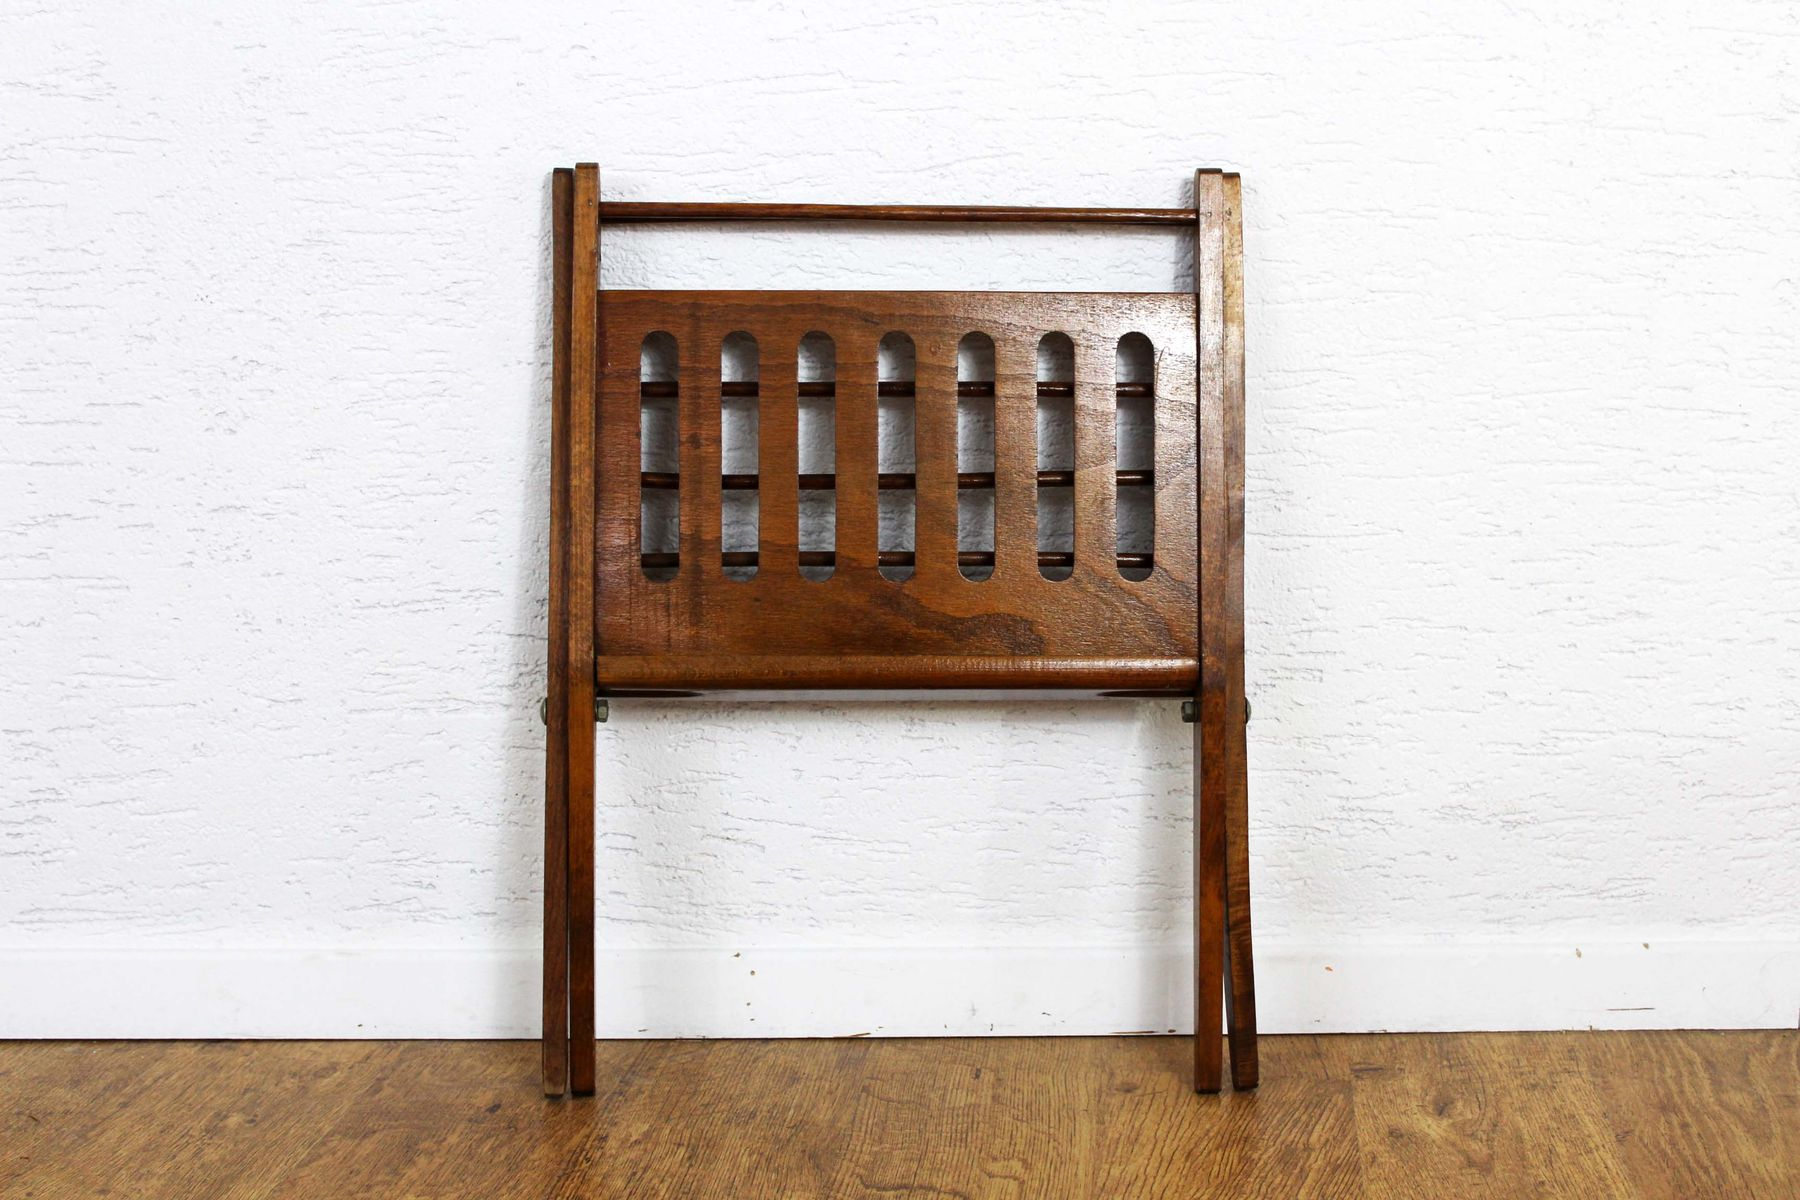 Vintage Magazine Rack by Cees Braakman for Pastoe for sale at Pamono